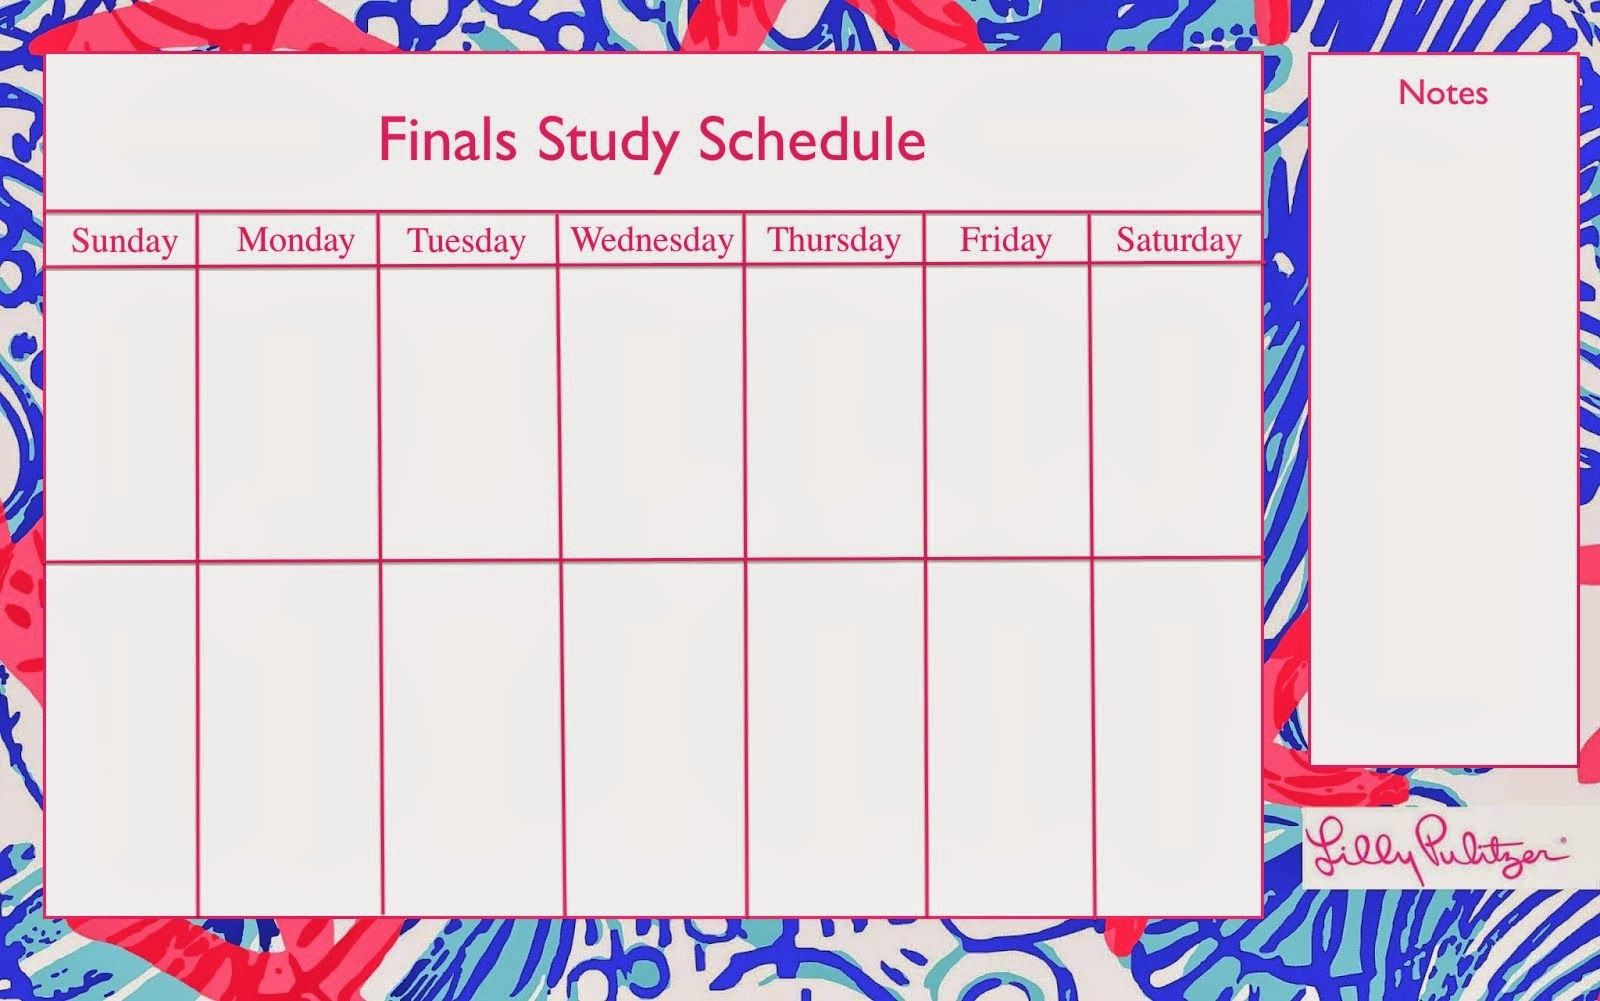 Finals Study Schedule Template Anchors And Pearls Hotty Toddy